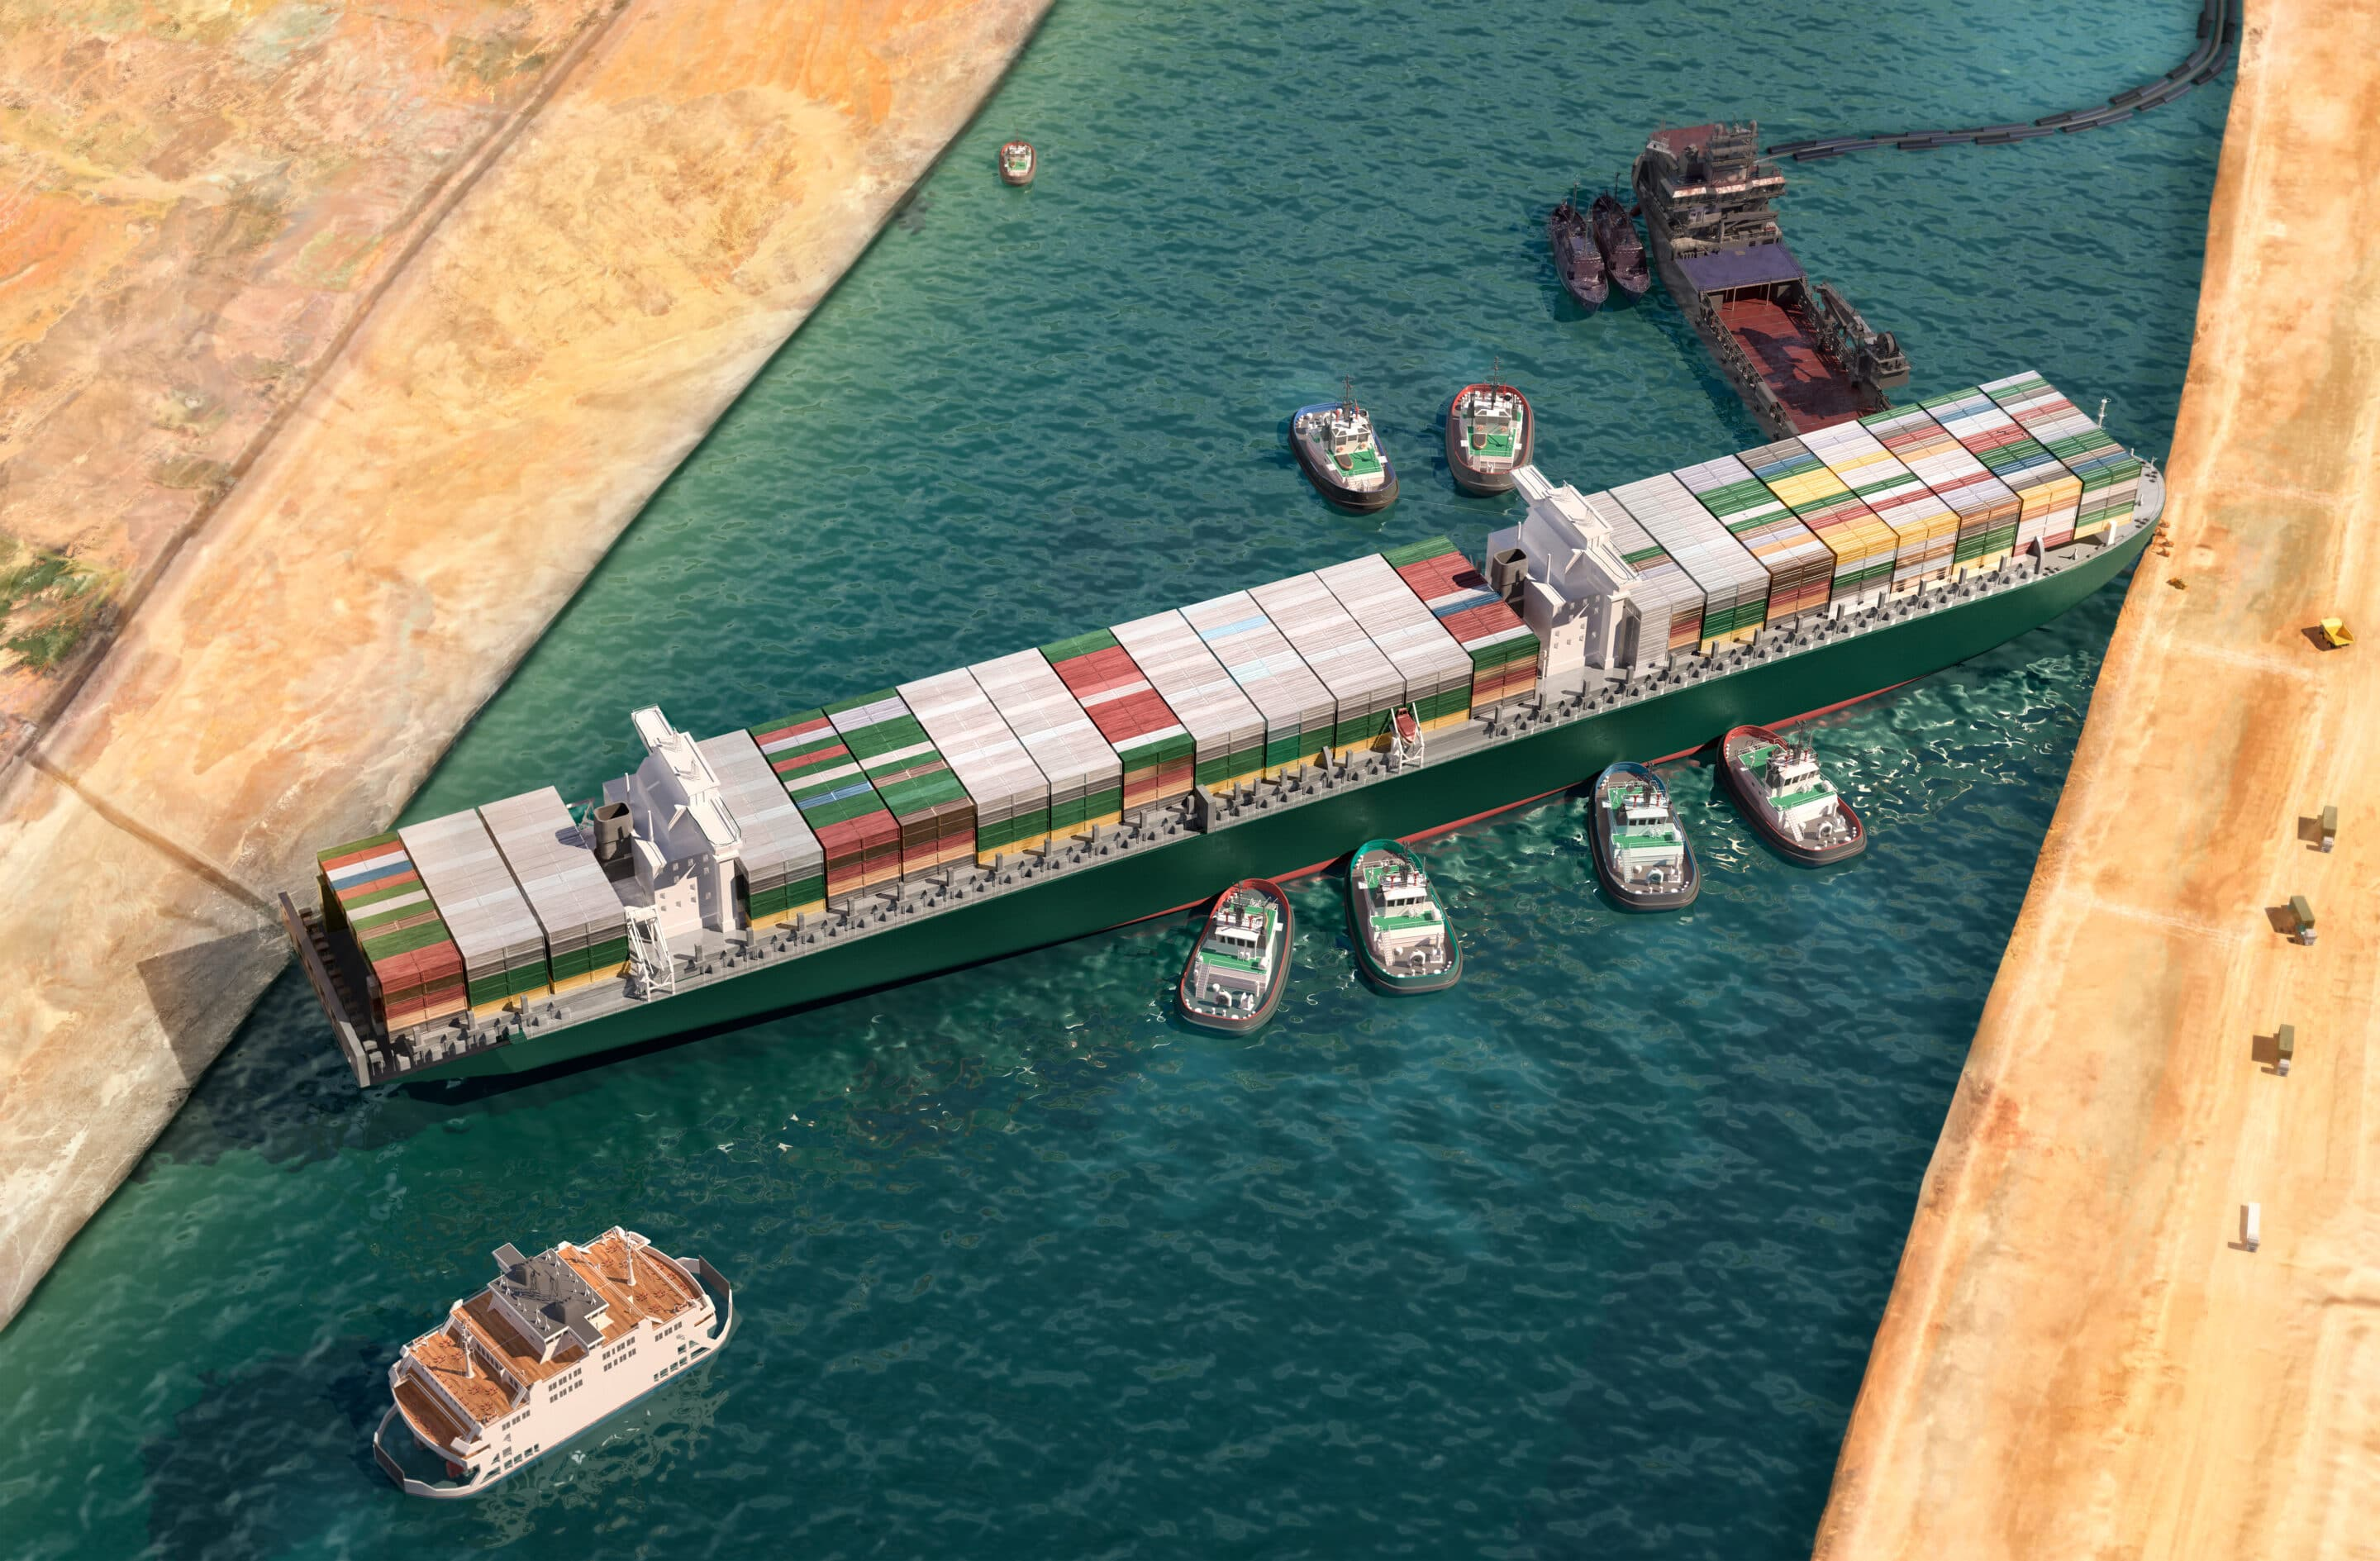 Was Ever Given Never Given A Chance In The Suez Canal?